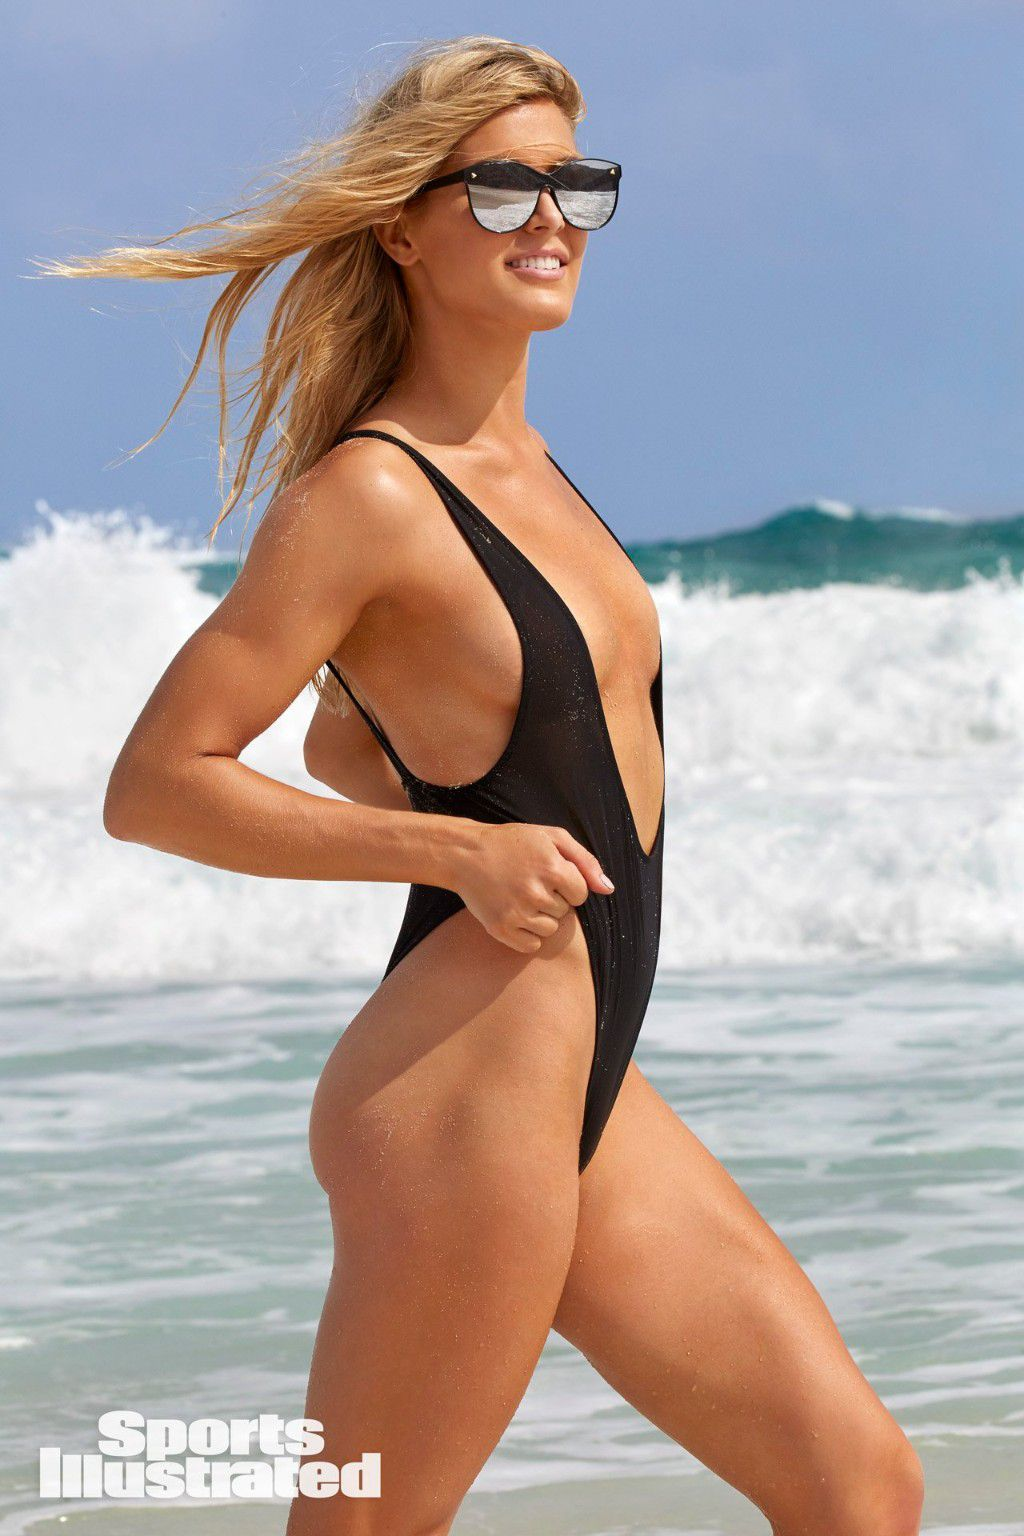 eugenie-bouchard-super-sexy-in-sports-illustrated-swimsuit-issue-2018-20